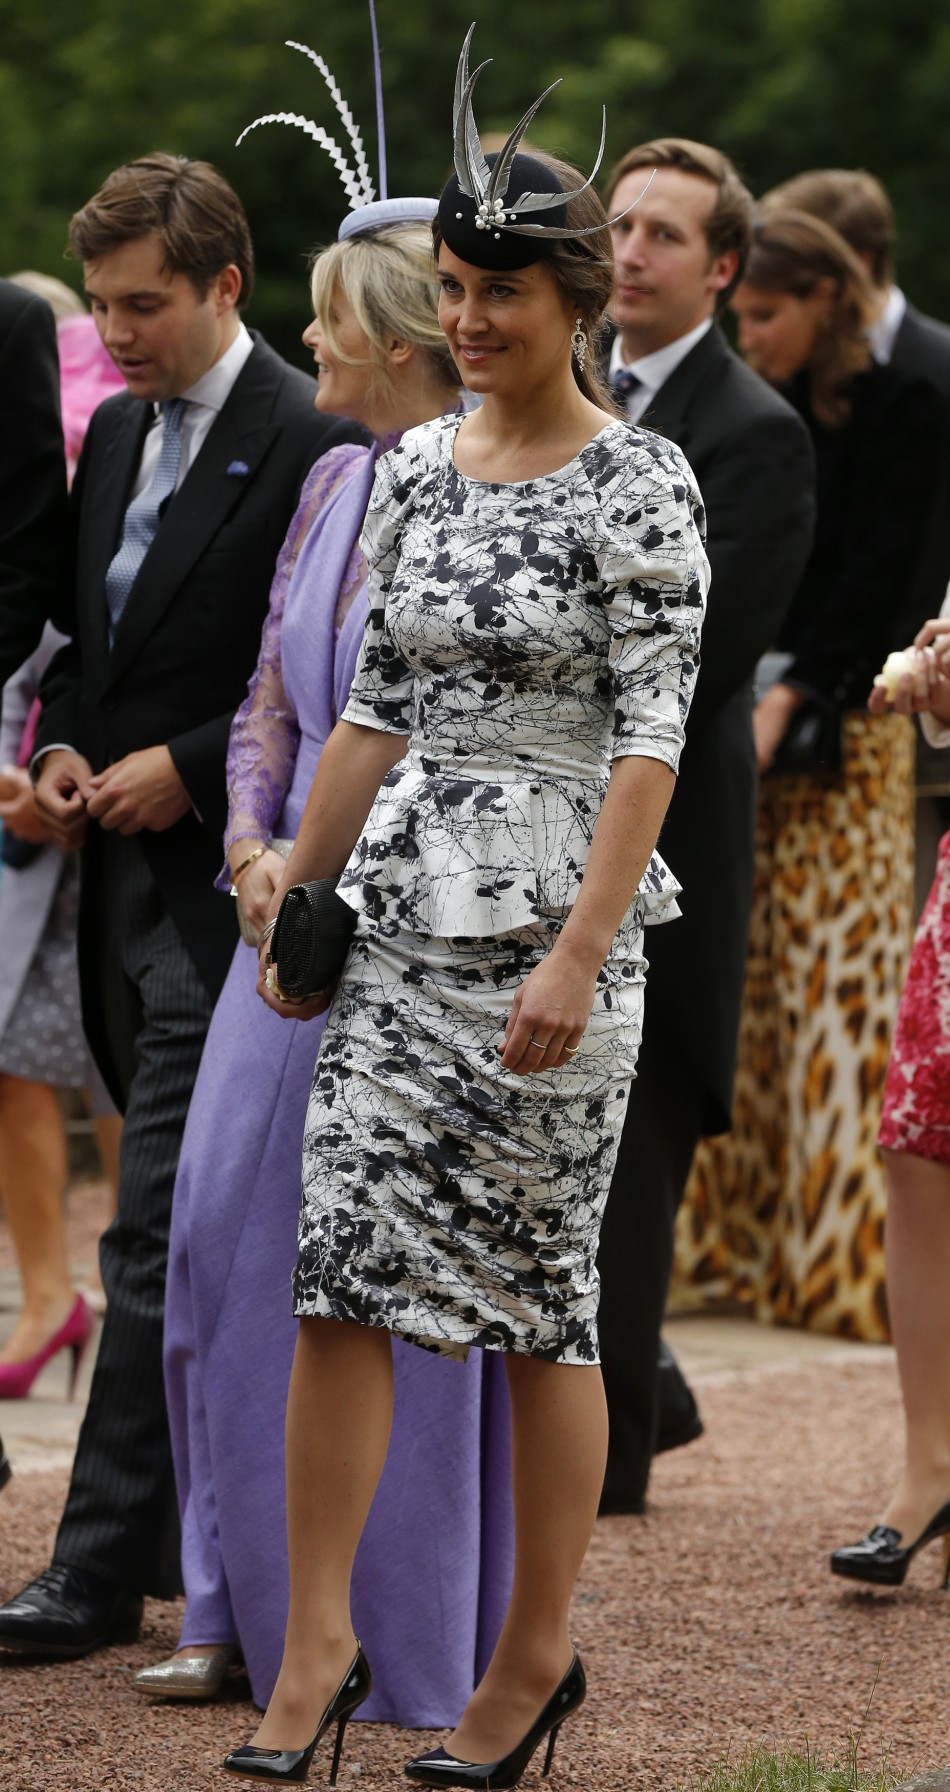 Pippa Middleton, the sister of Catherine, Duchess of Cambridge smiles as she leaves the wedding